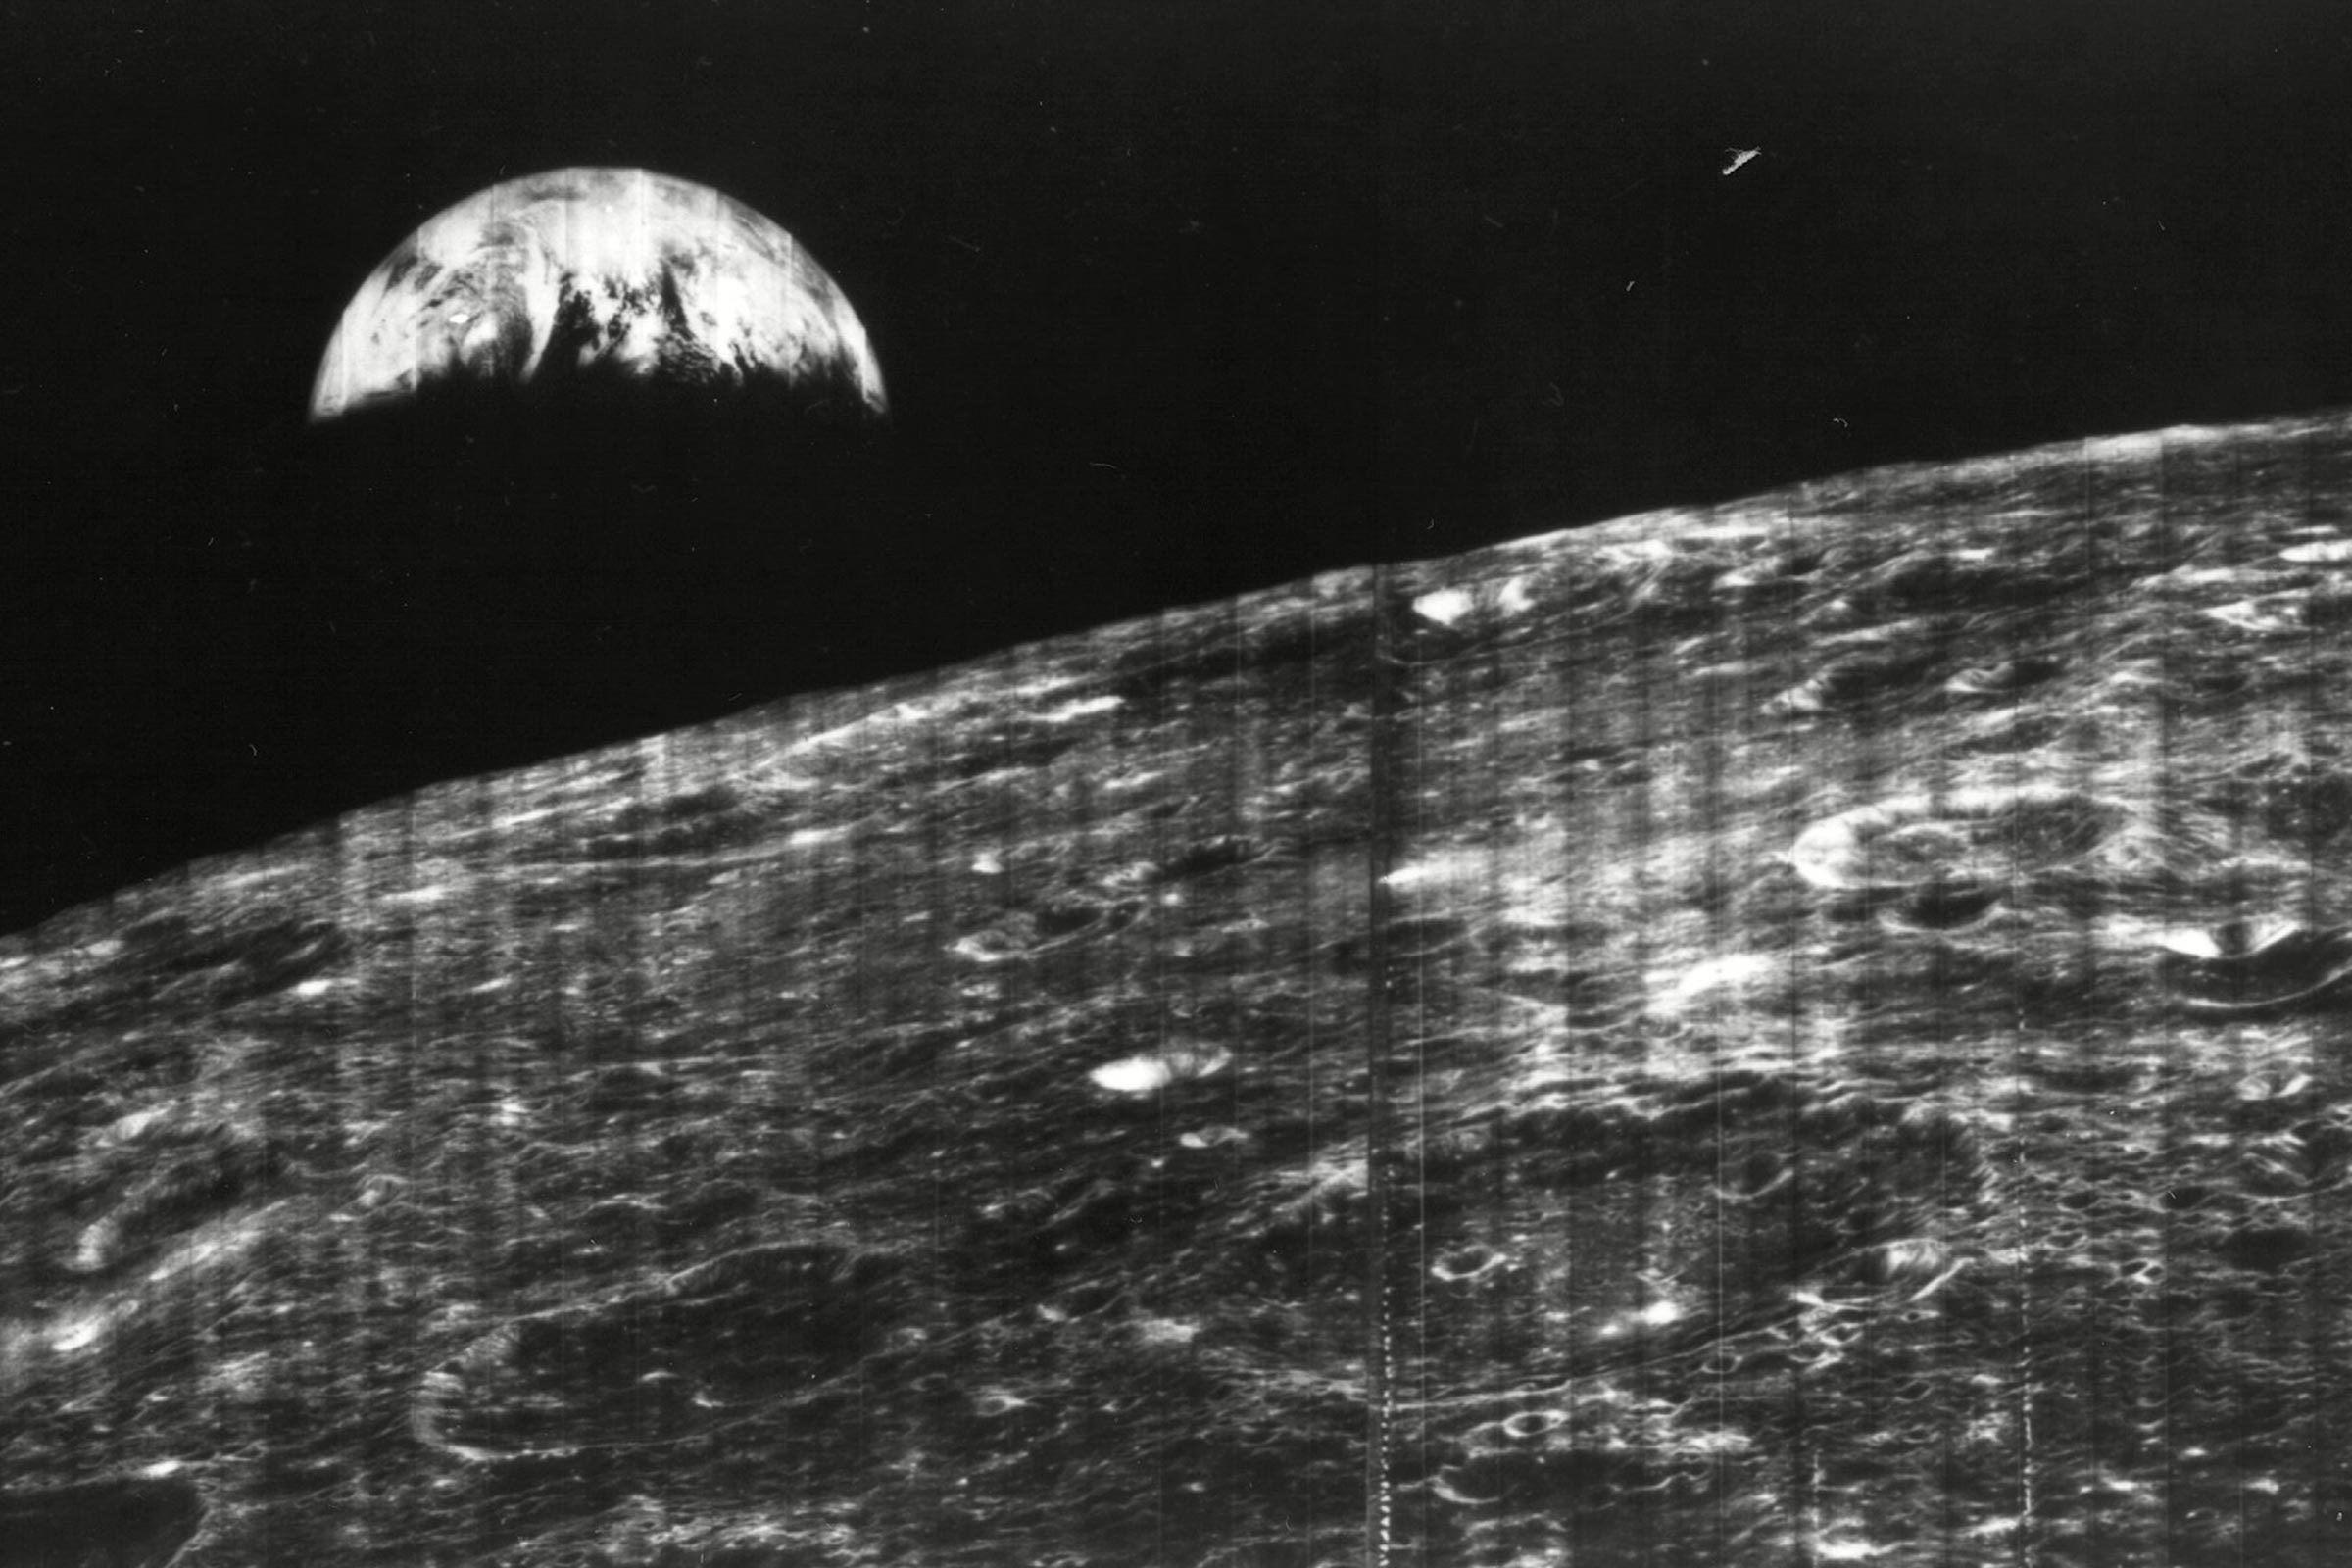 The World's First View of Earth